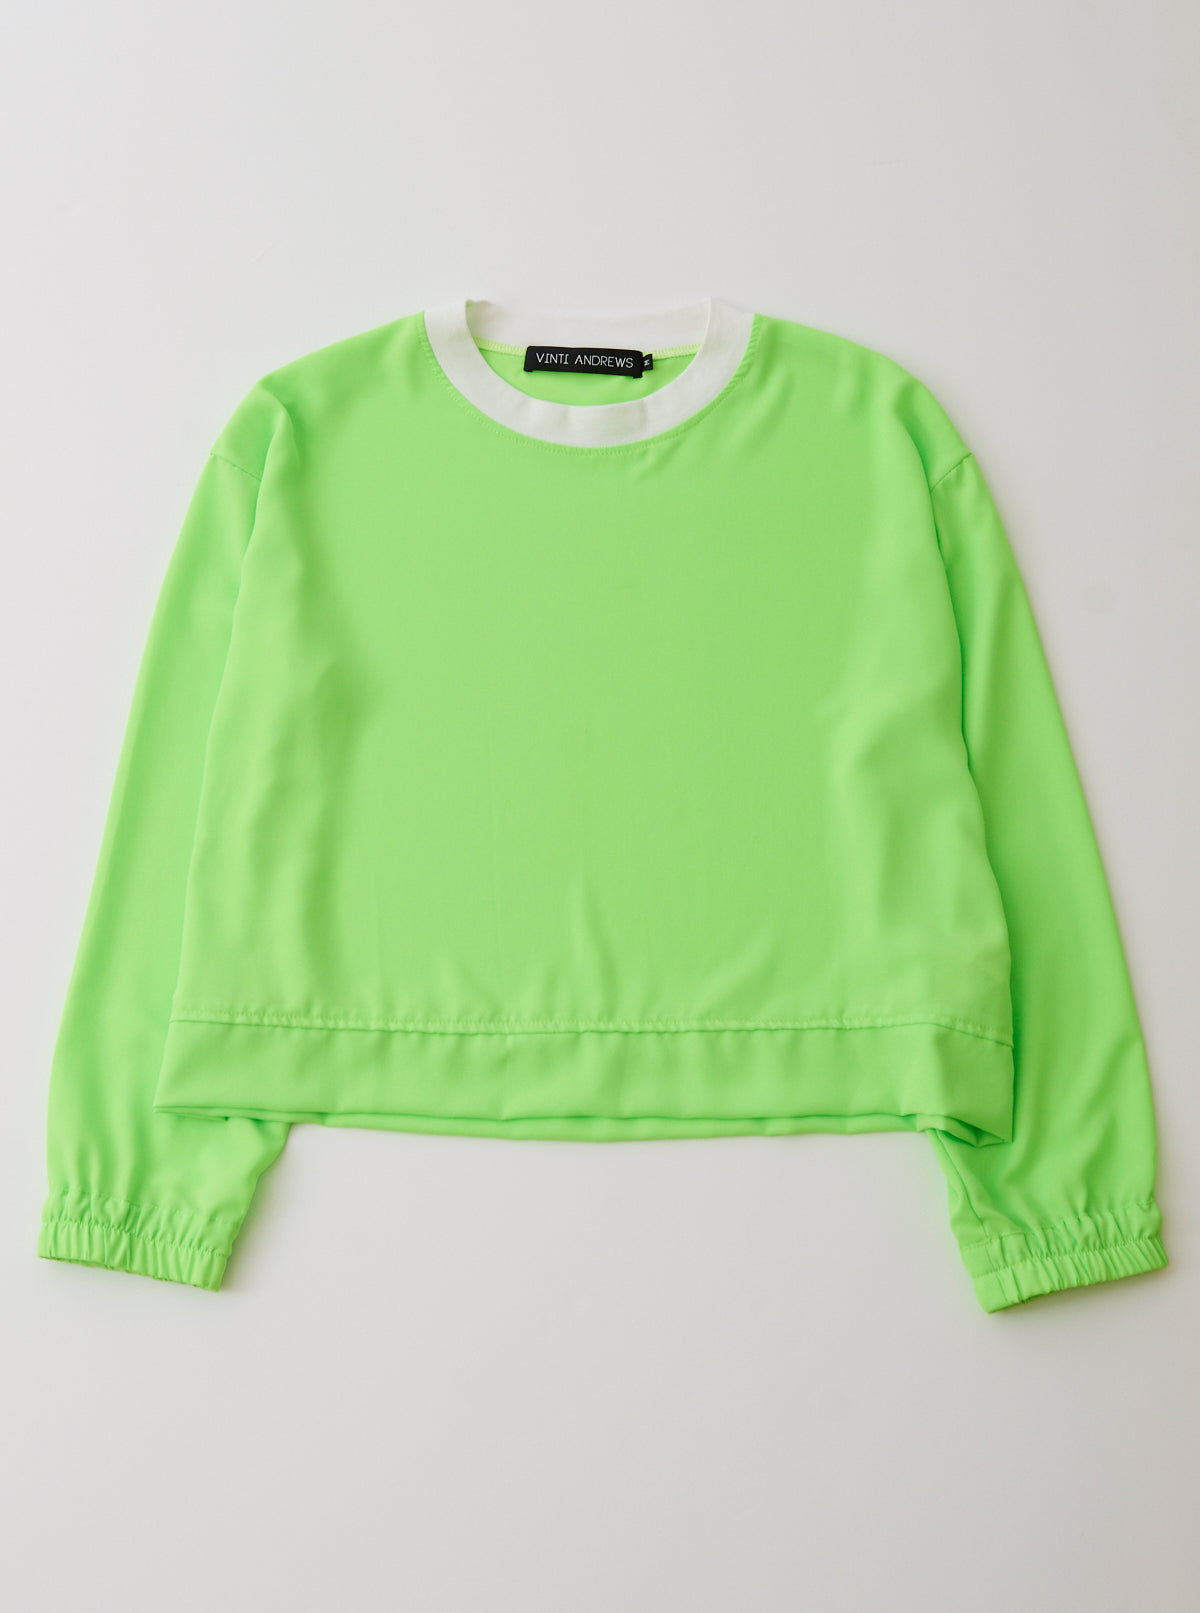 crepe de chine Jumper Top